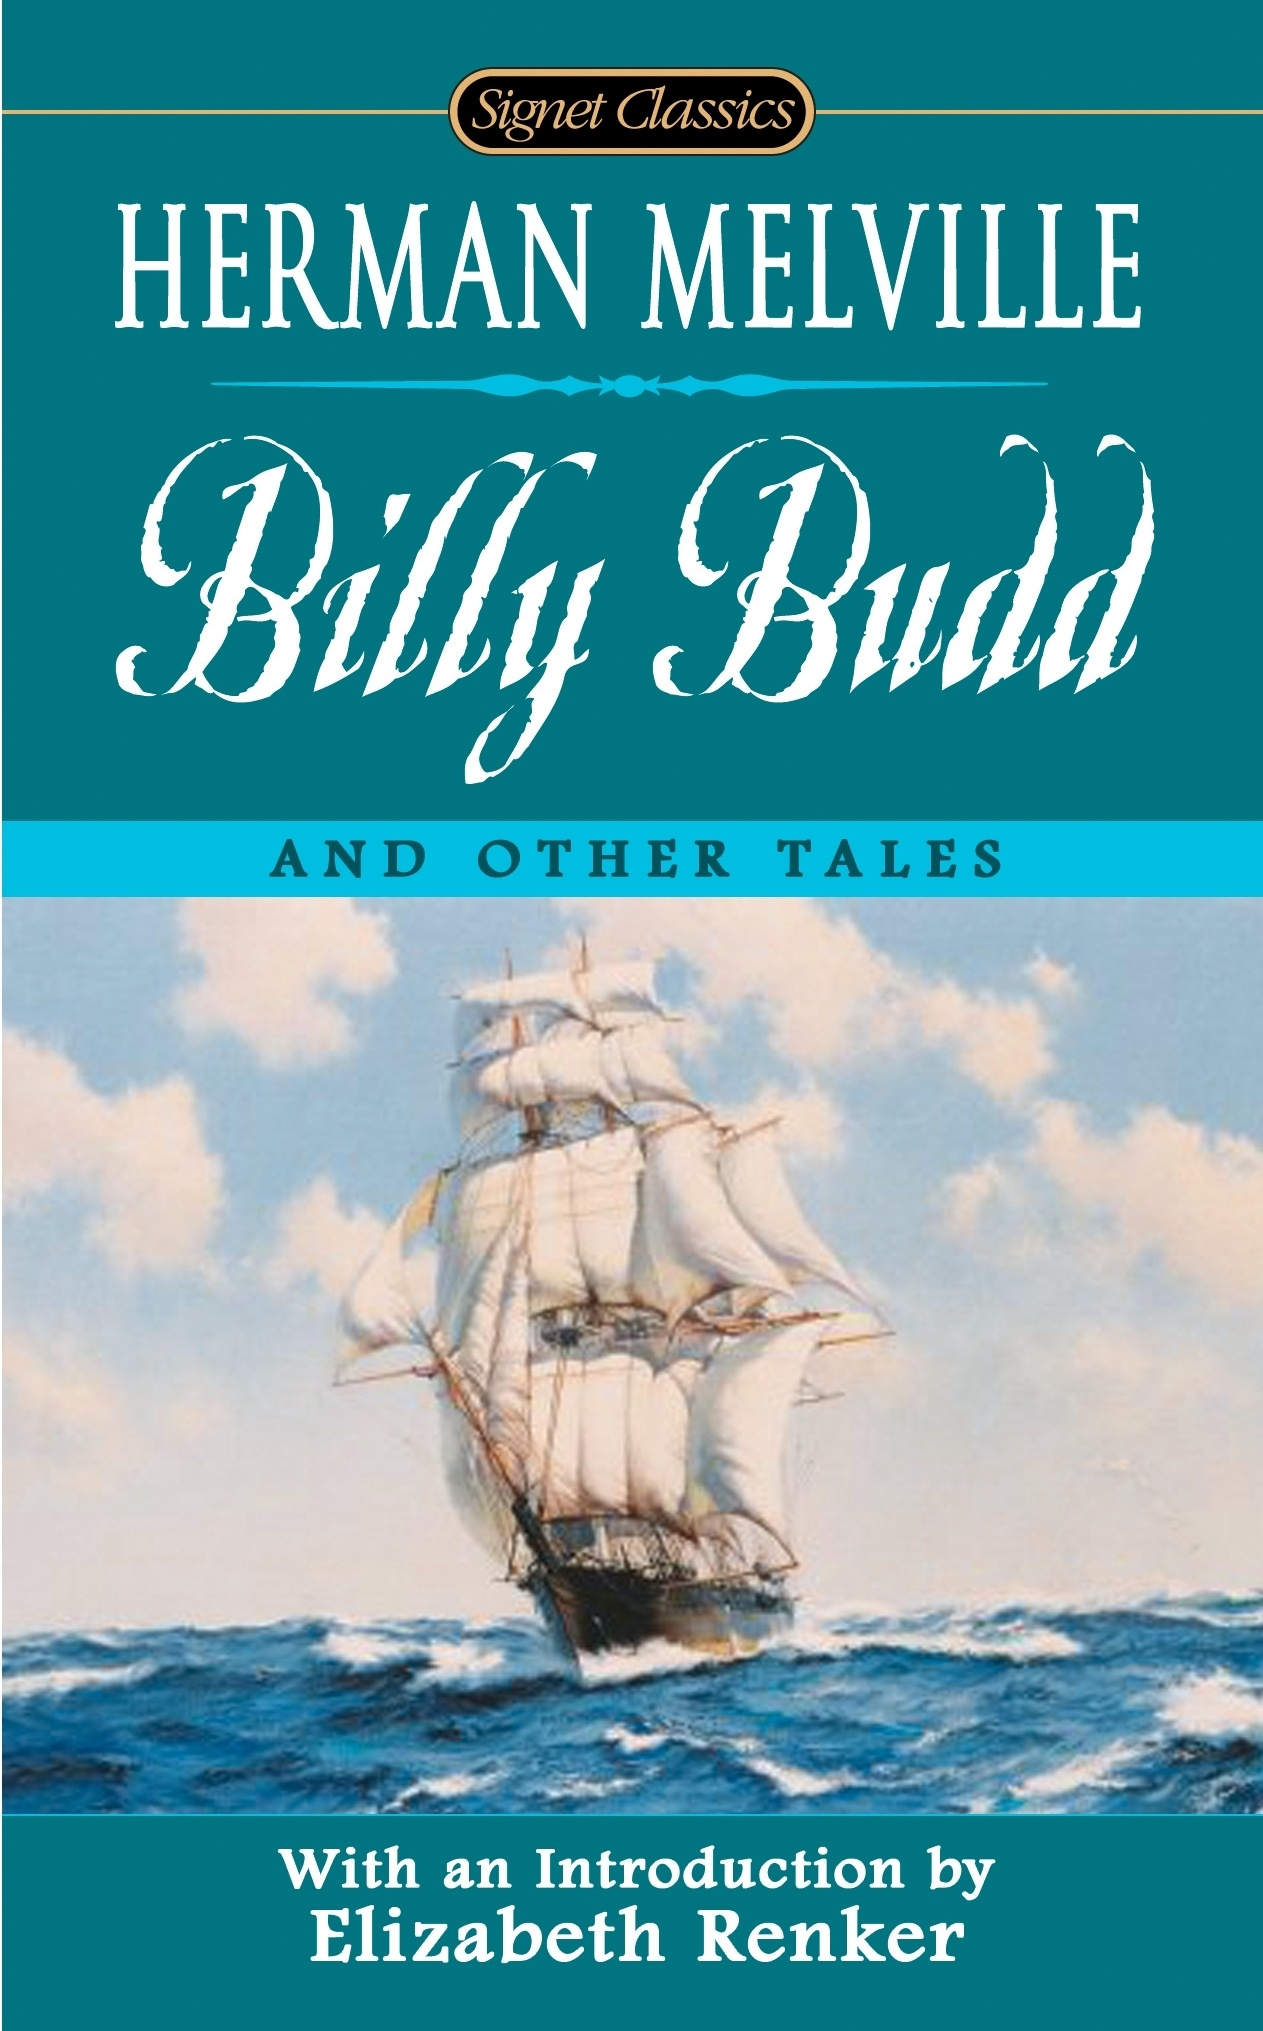 an analysis of the novel billy budd by herman melville Billy budd and other stories has 4,528 ratings and 247 reviews rebecca said: herman melville is one of my favourite authors in the realm of classic fict.